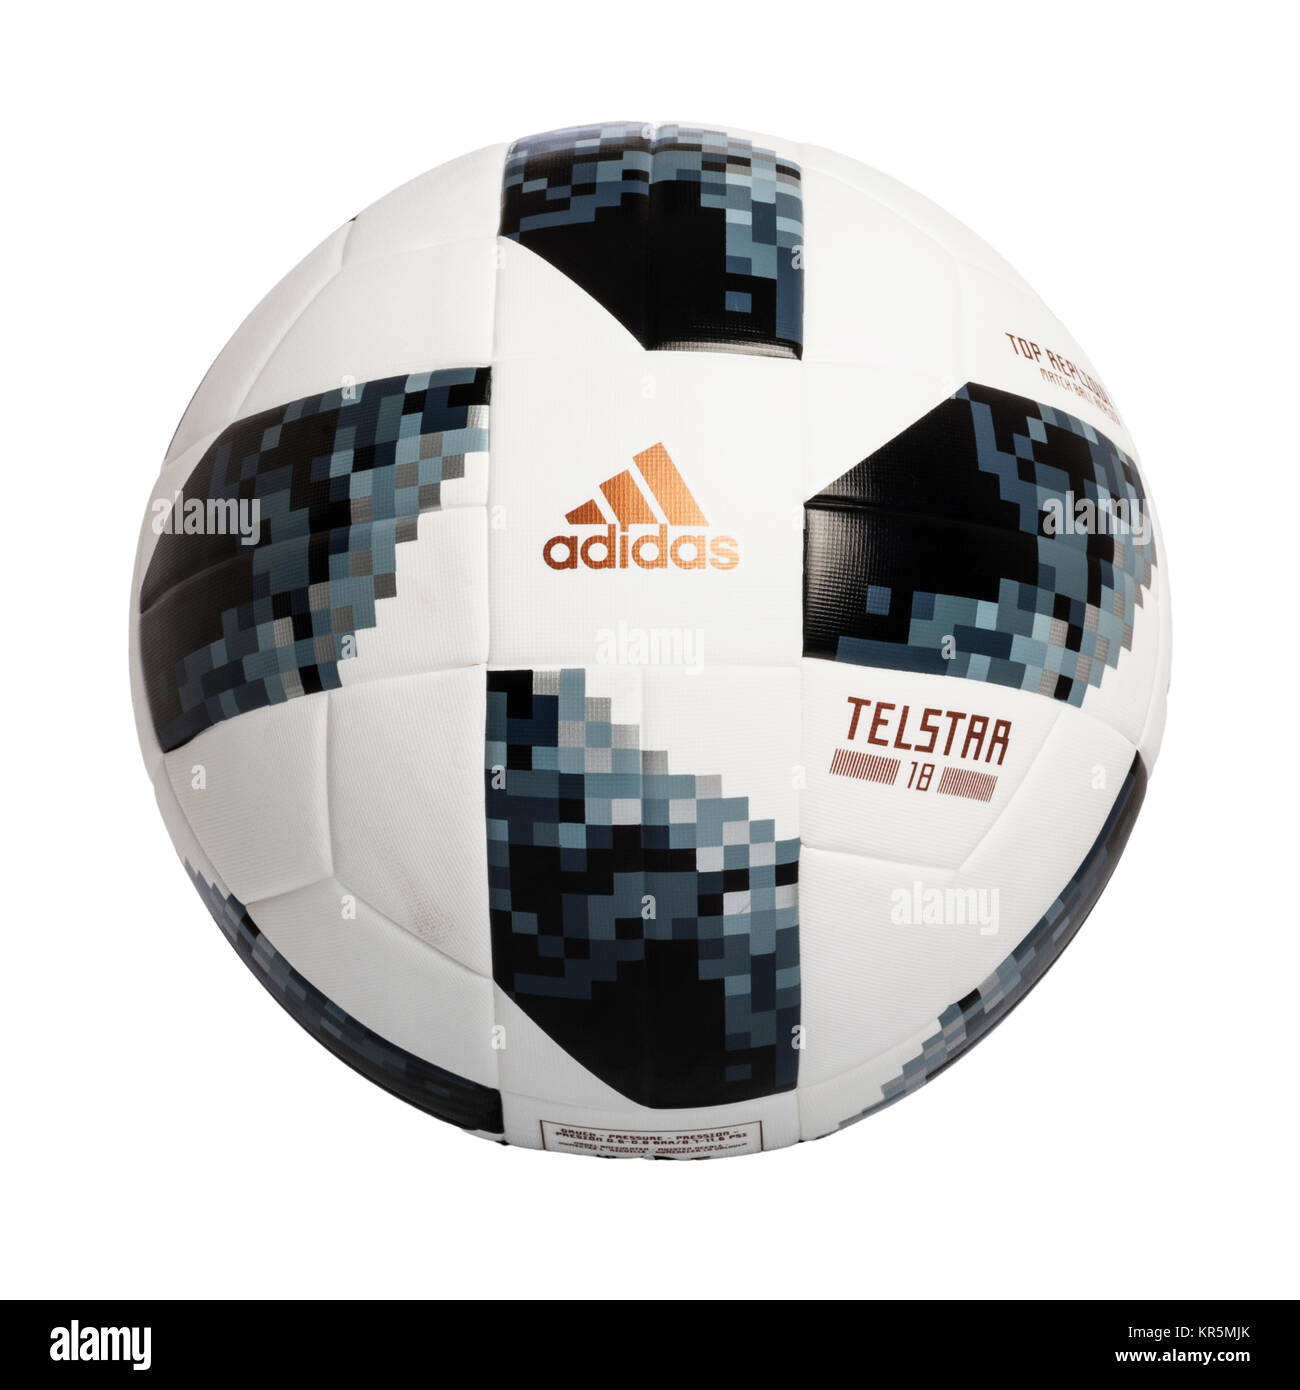 The adidas Telstar 2018 world cup replica  football on a white background - Stock Image